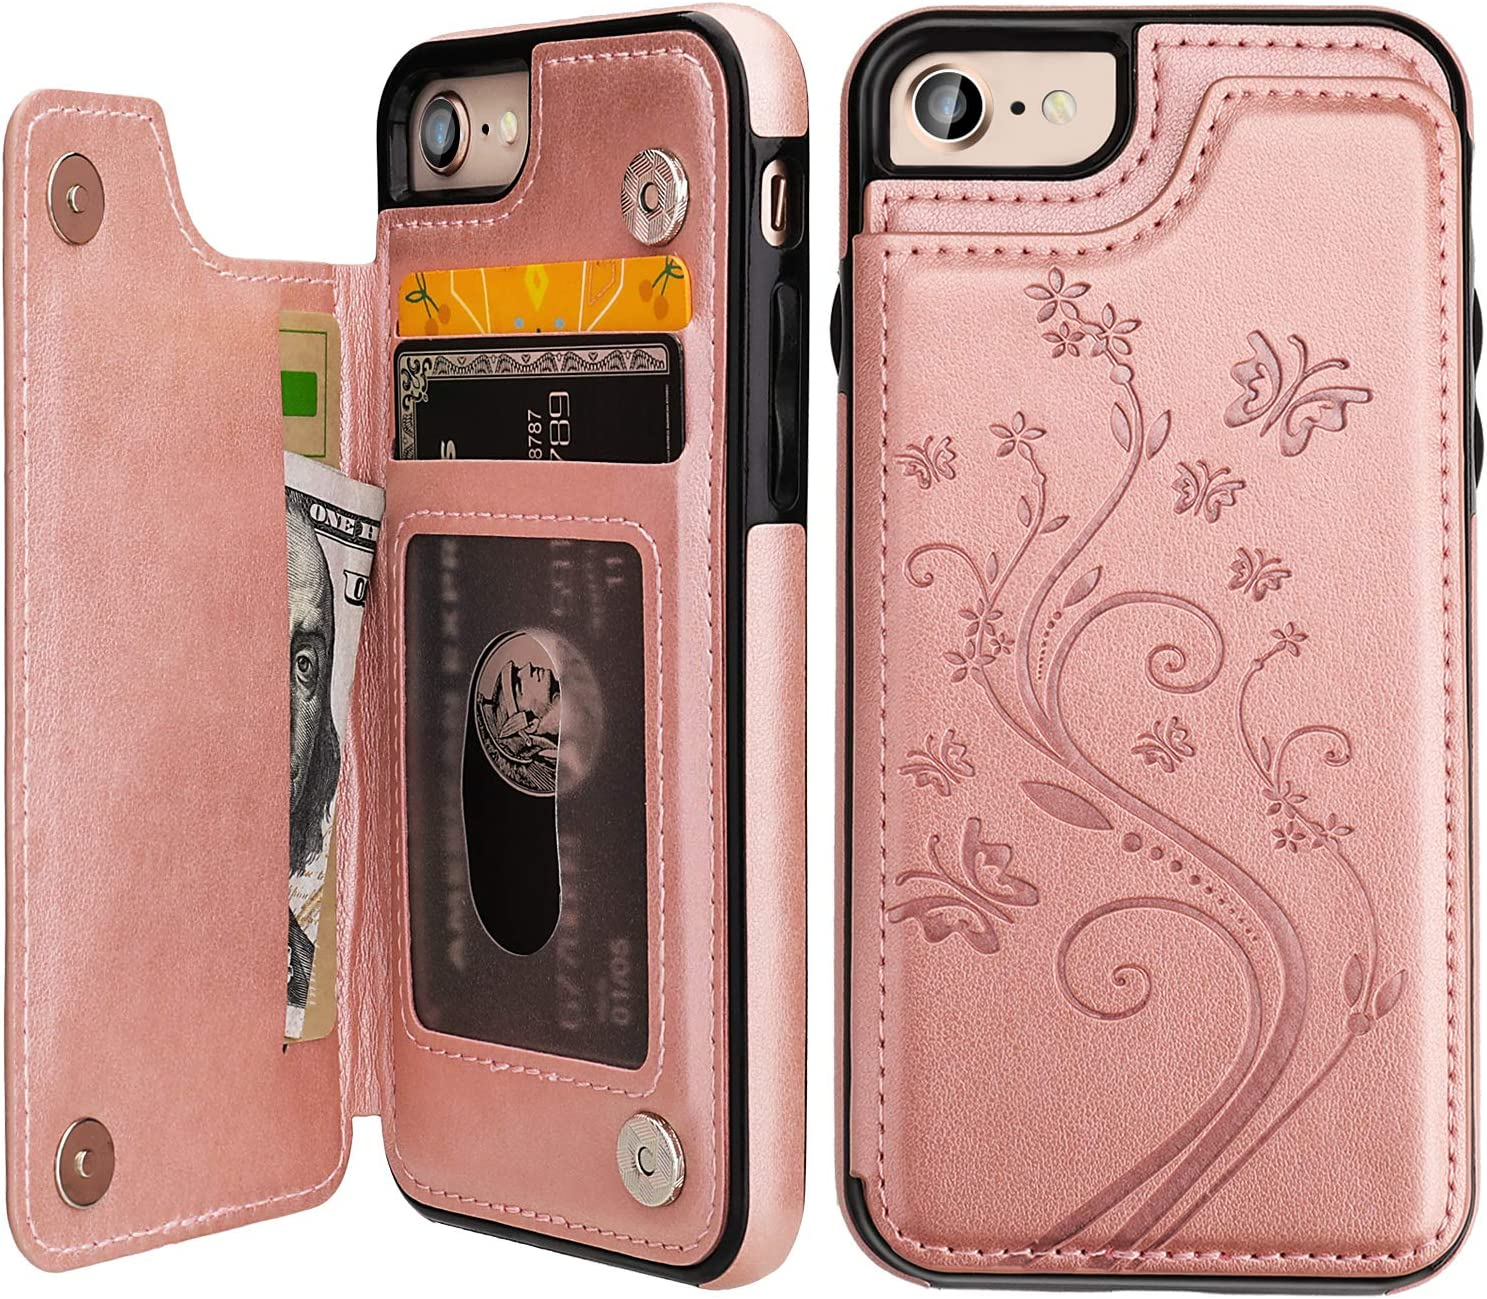 iPhone 7 iPhone 8 iPhone SE 2020 Case Wallet with Card Holder, Vaburs Embossed Butterfly Premium PU Leather Double Magnetic Buttons Flip Shockproof Protective Cover for iPhone 7/8/SE 2020 C(Rose Gold)